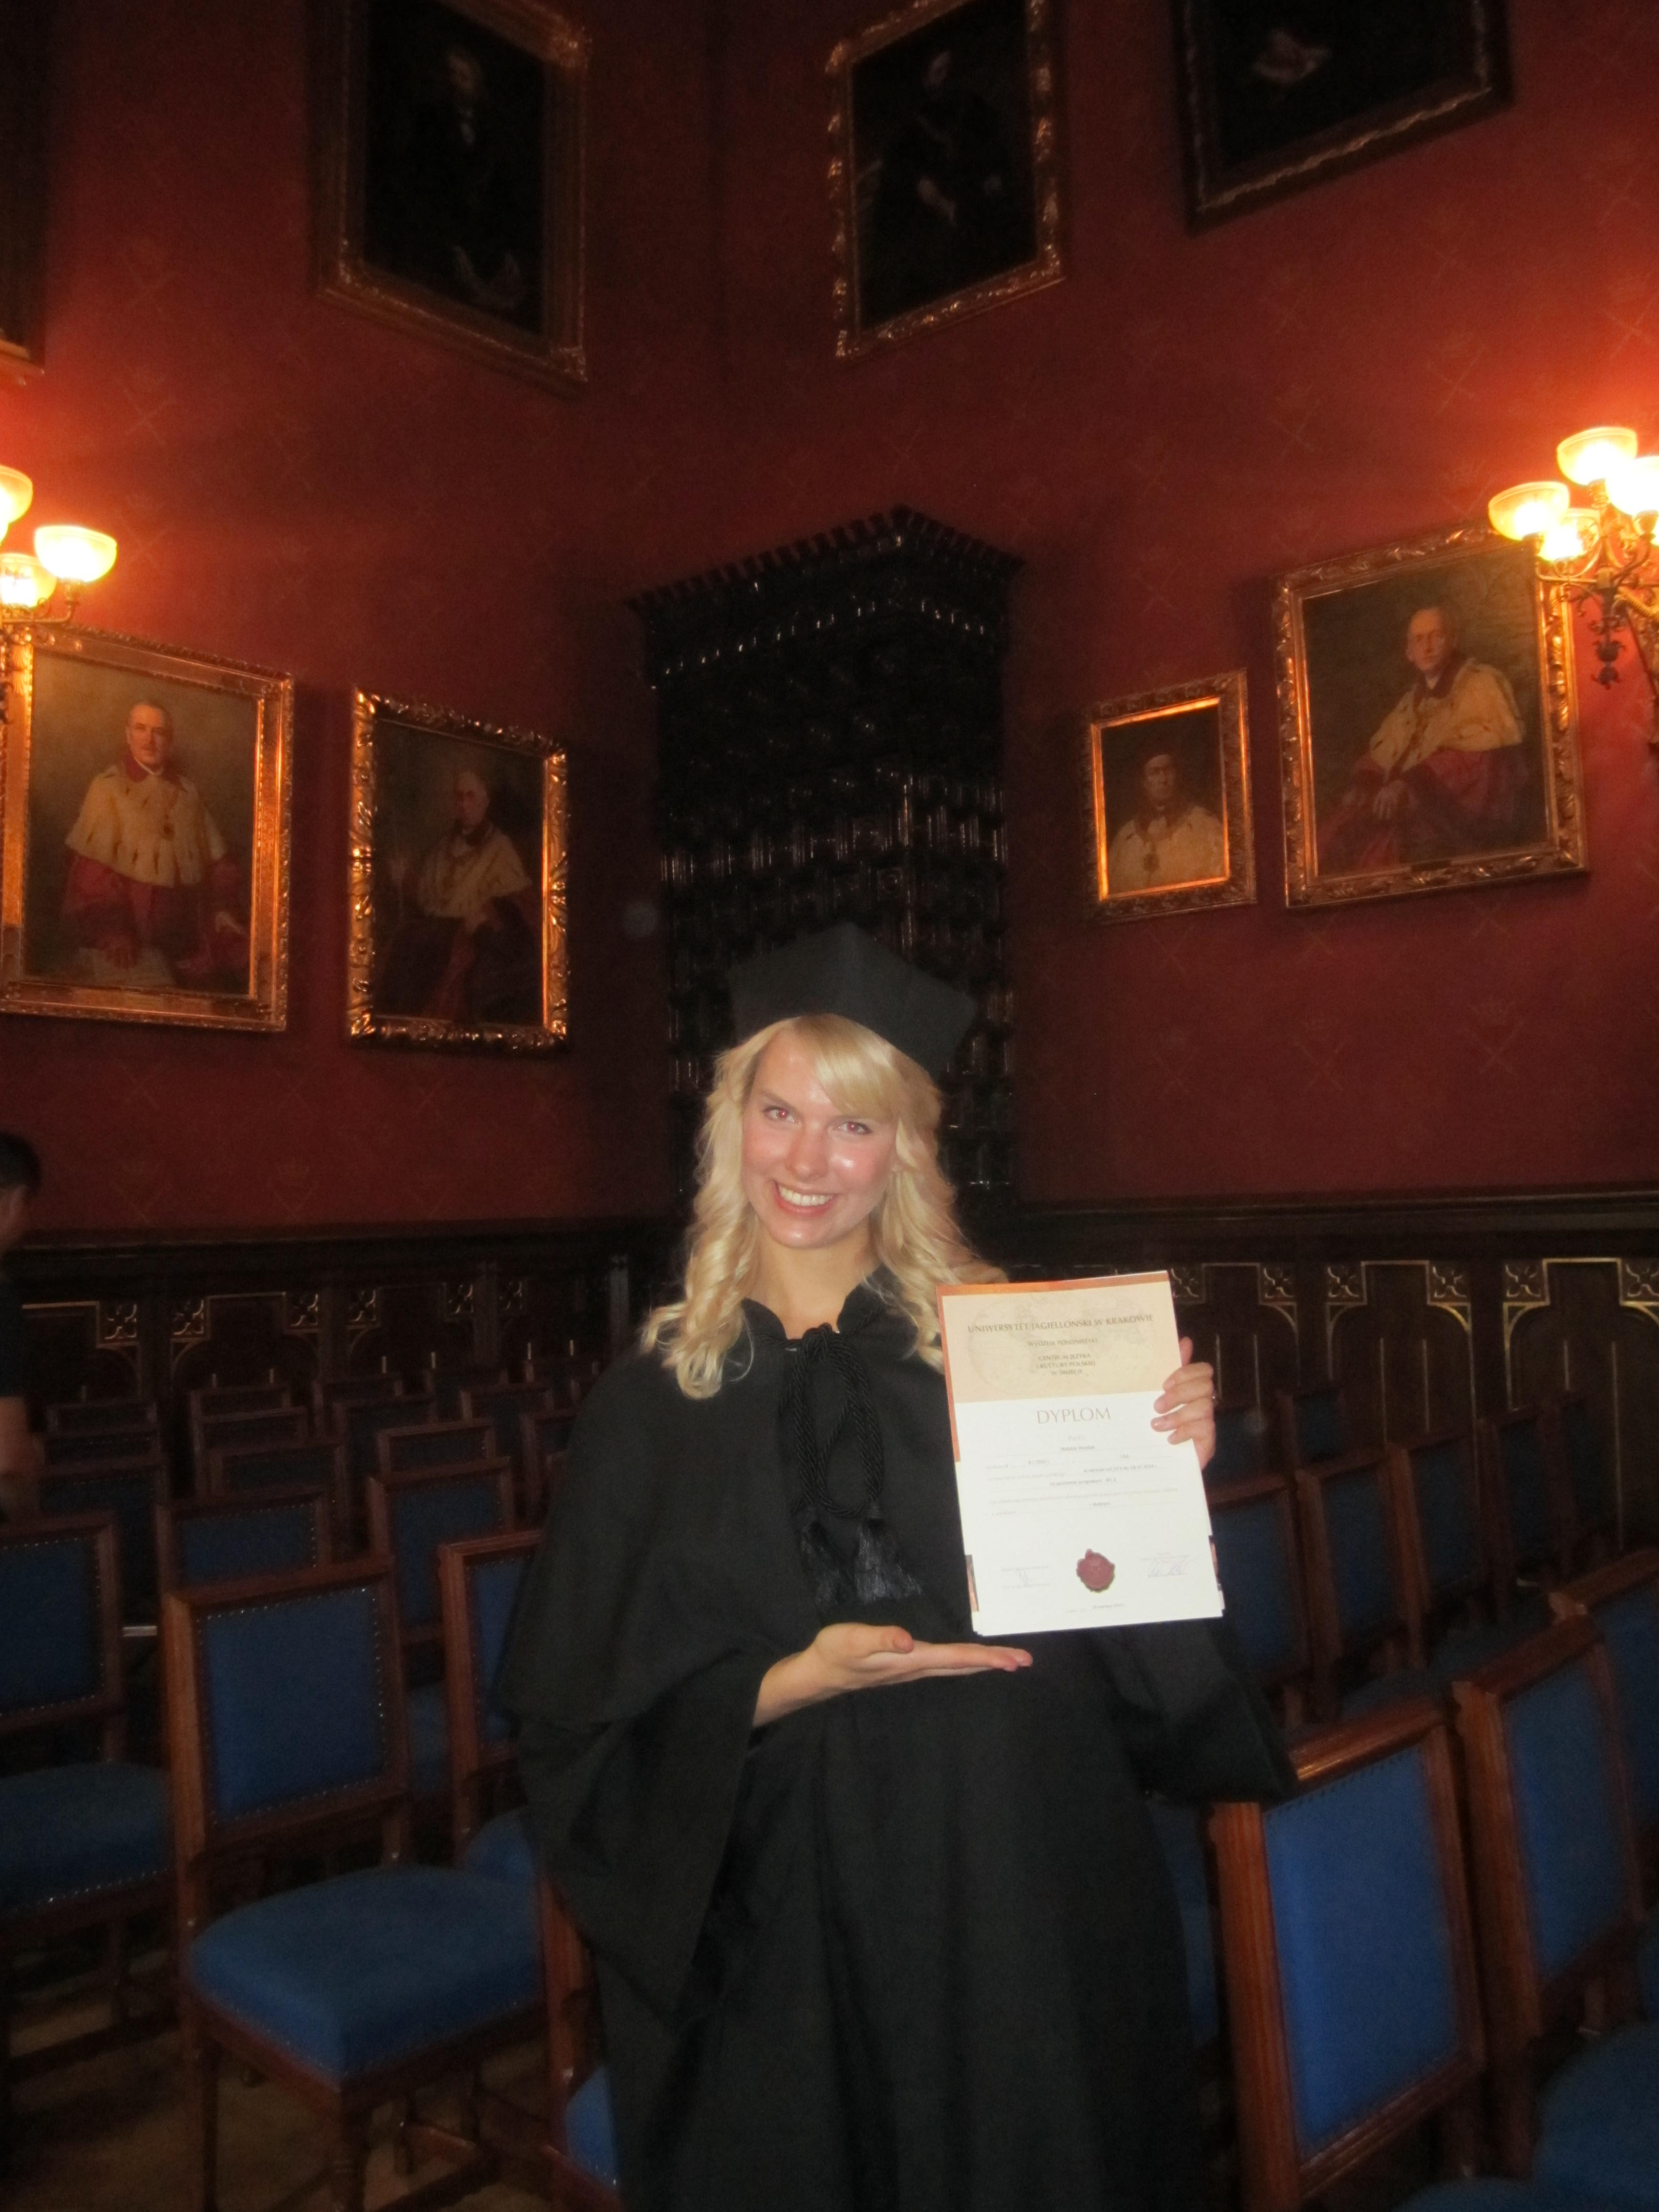 KF scholar receives a diploma from the Jagiellonian University, Center of Polish Language and Culture, Krakow.